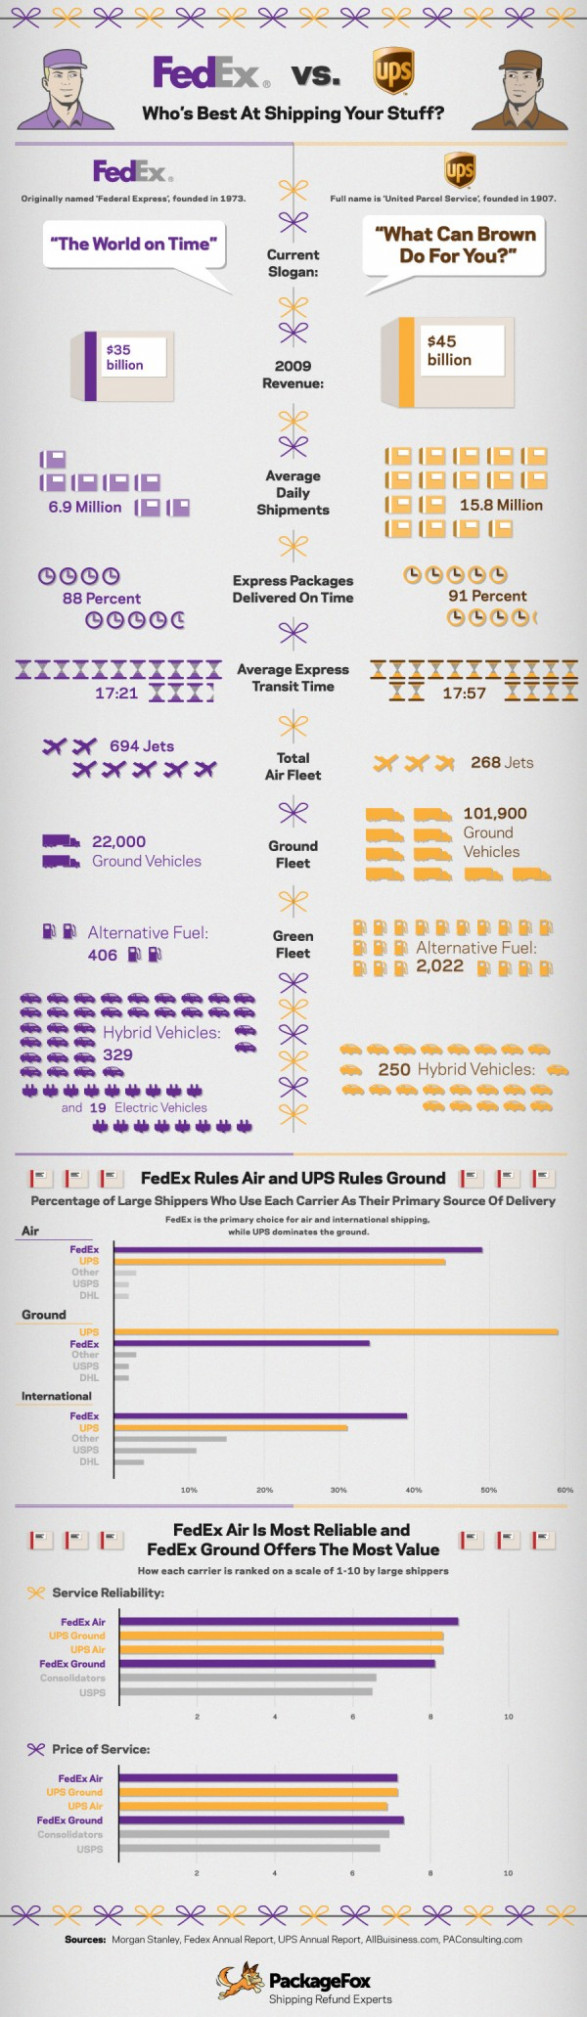 Battle Royale: FedEx vs. UPS